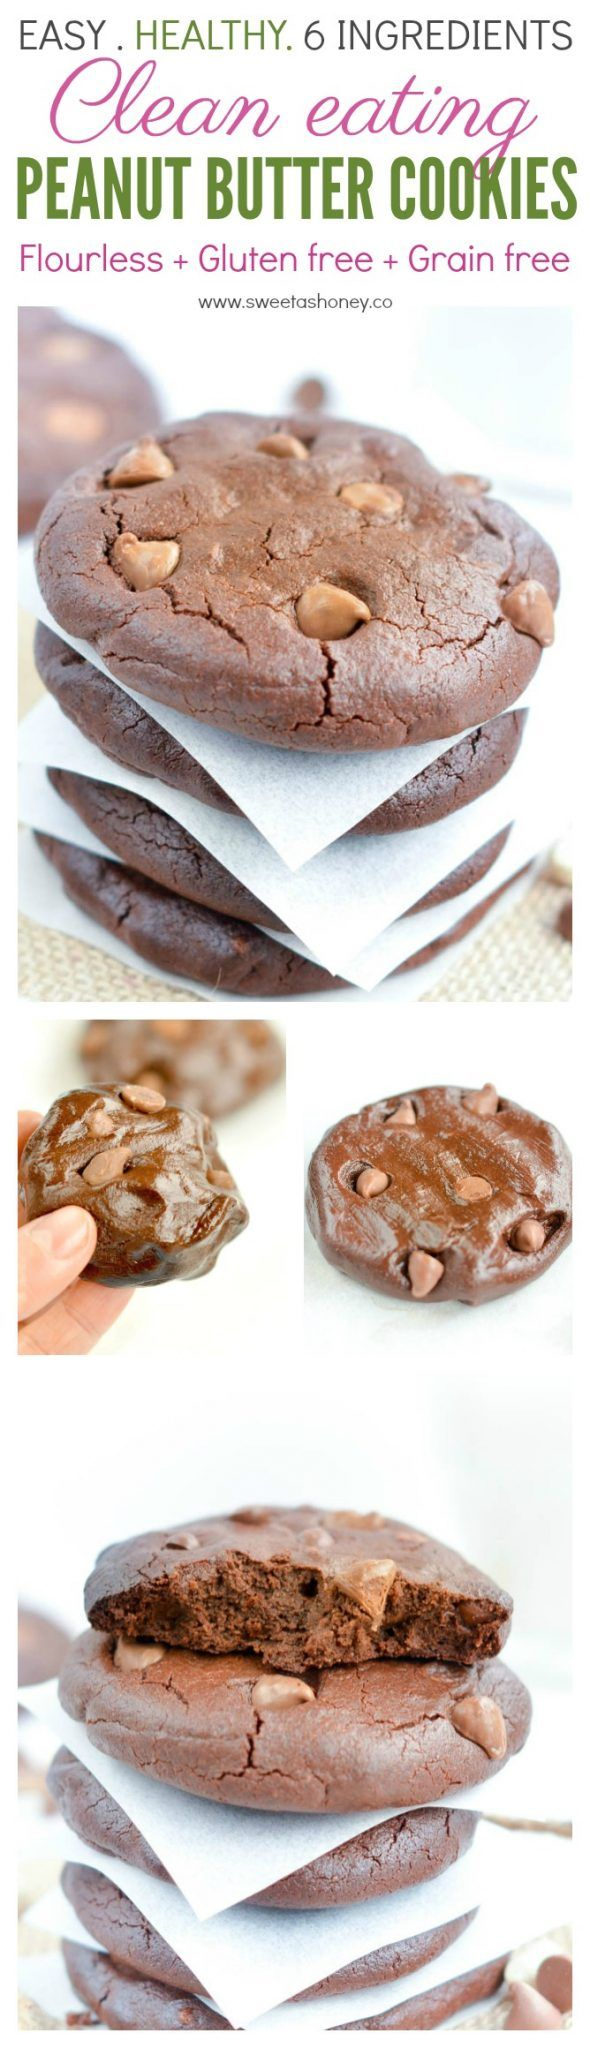 Healthy Peanut Butter Cookies with chocolate chips. The best Clean Eating cookies. NO refined ingredients, Flourless, No Sugar, easy 6 ingredients recipe to whip in 5 minutes. Grain free, gluten free and dairy free.